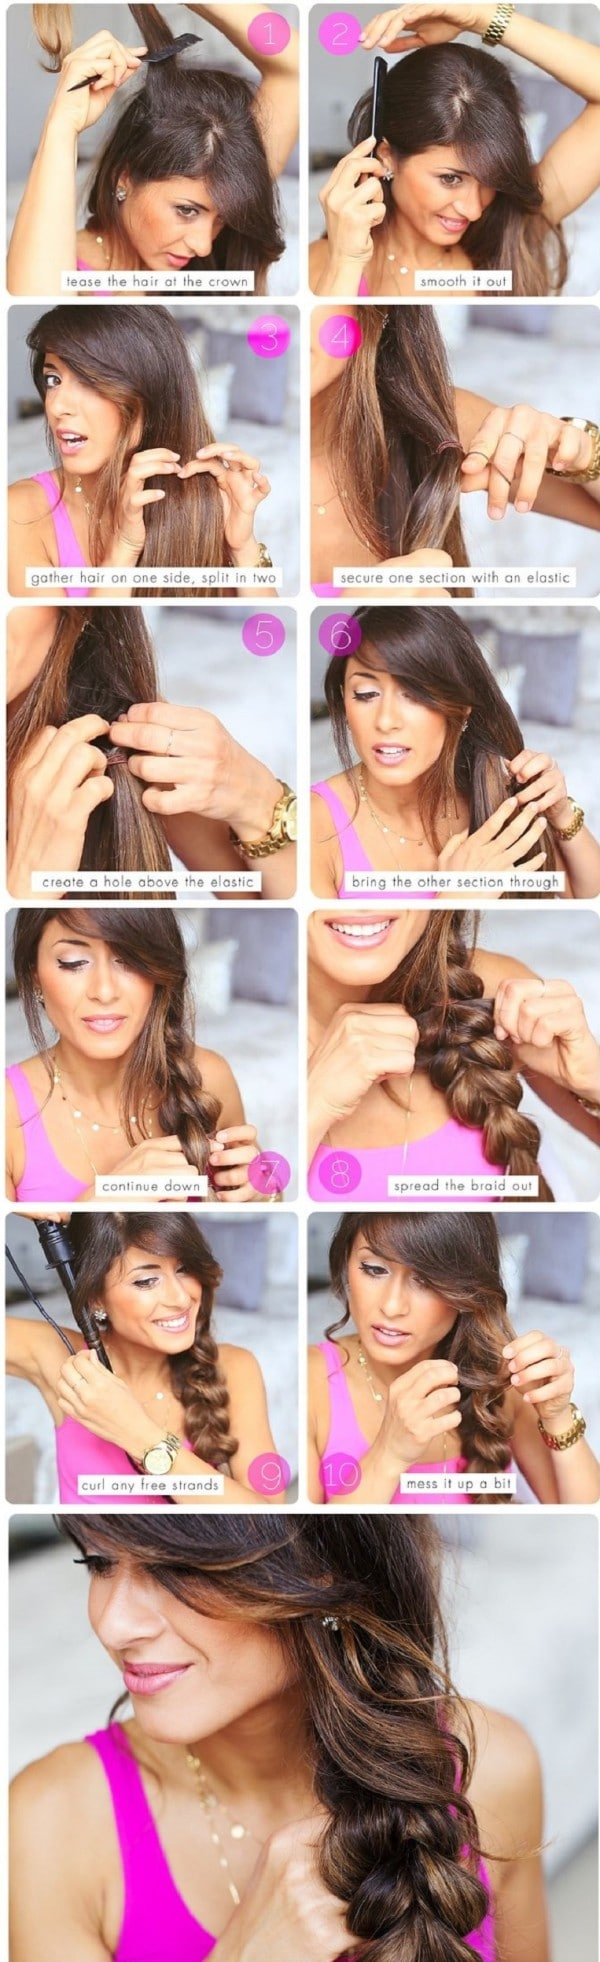 11 Gorgeous Hairstyle Ideas That You Should Try At Home